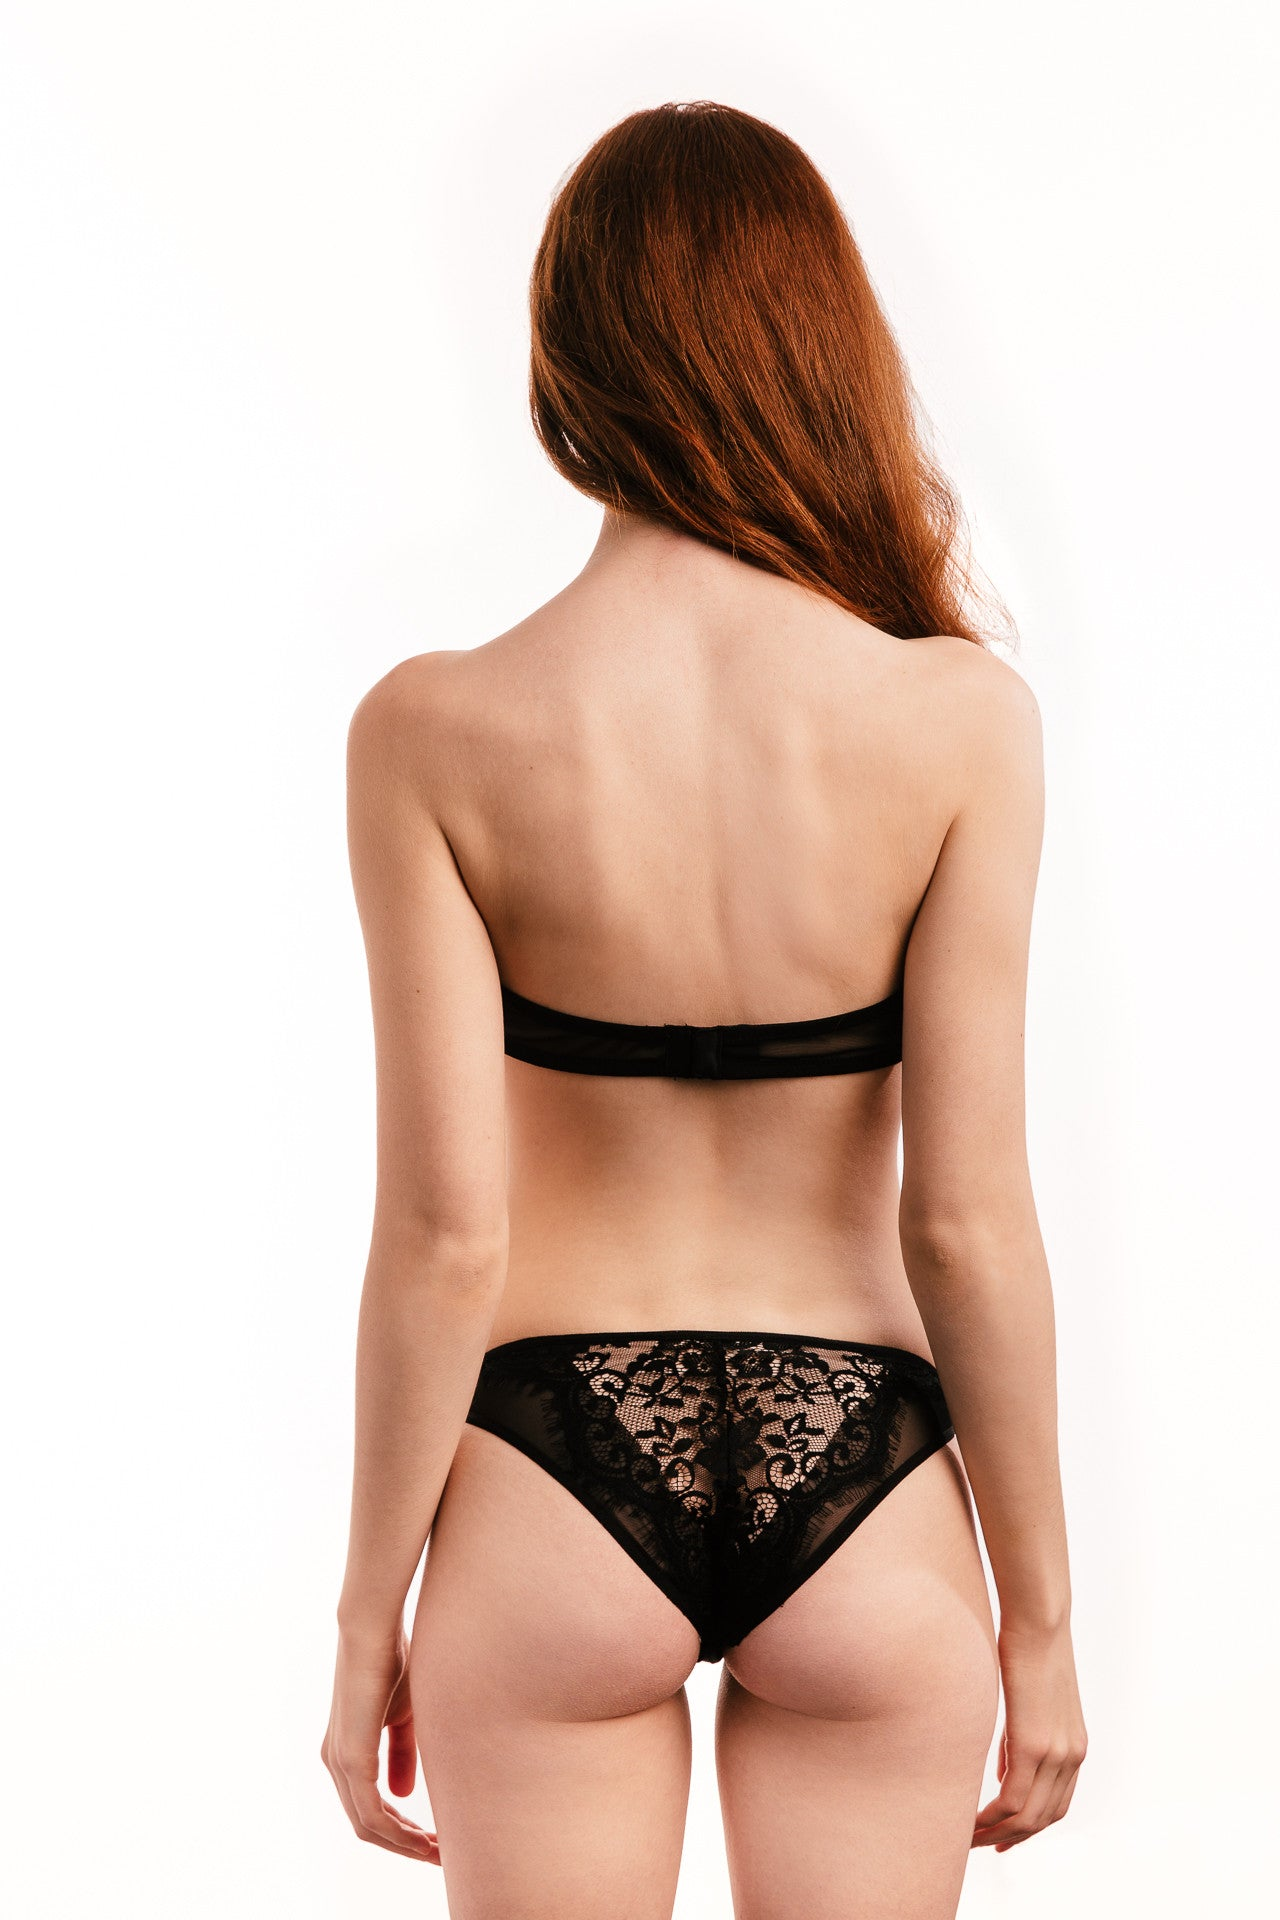 Paris Lace Set in Black - Luxe Parisian